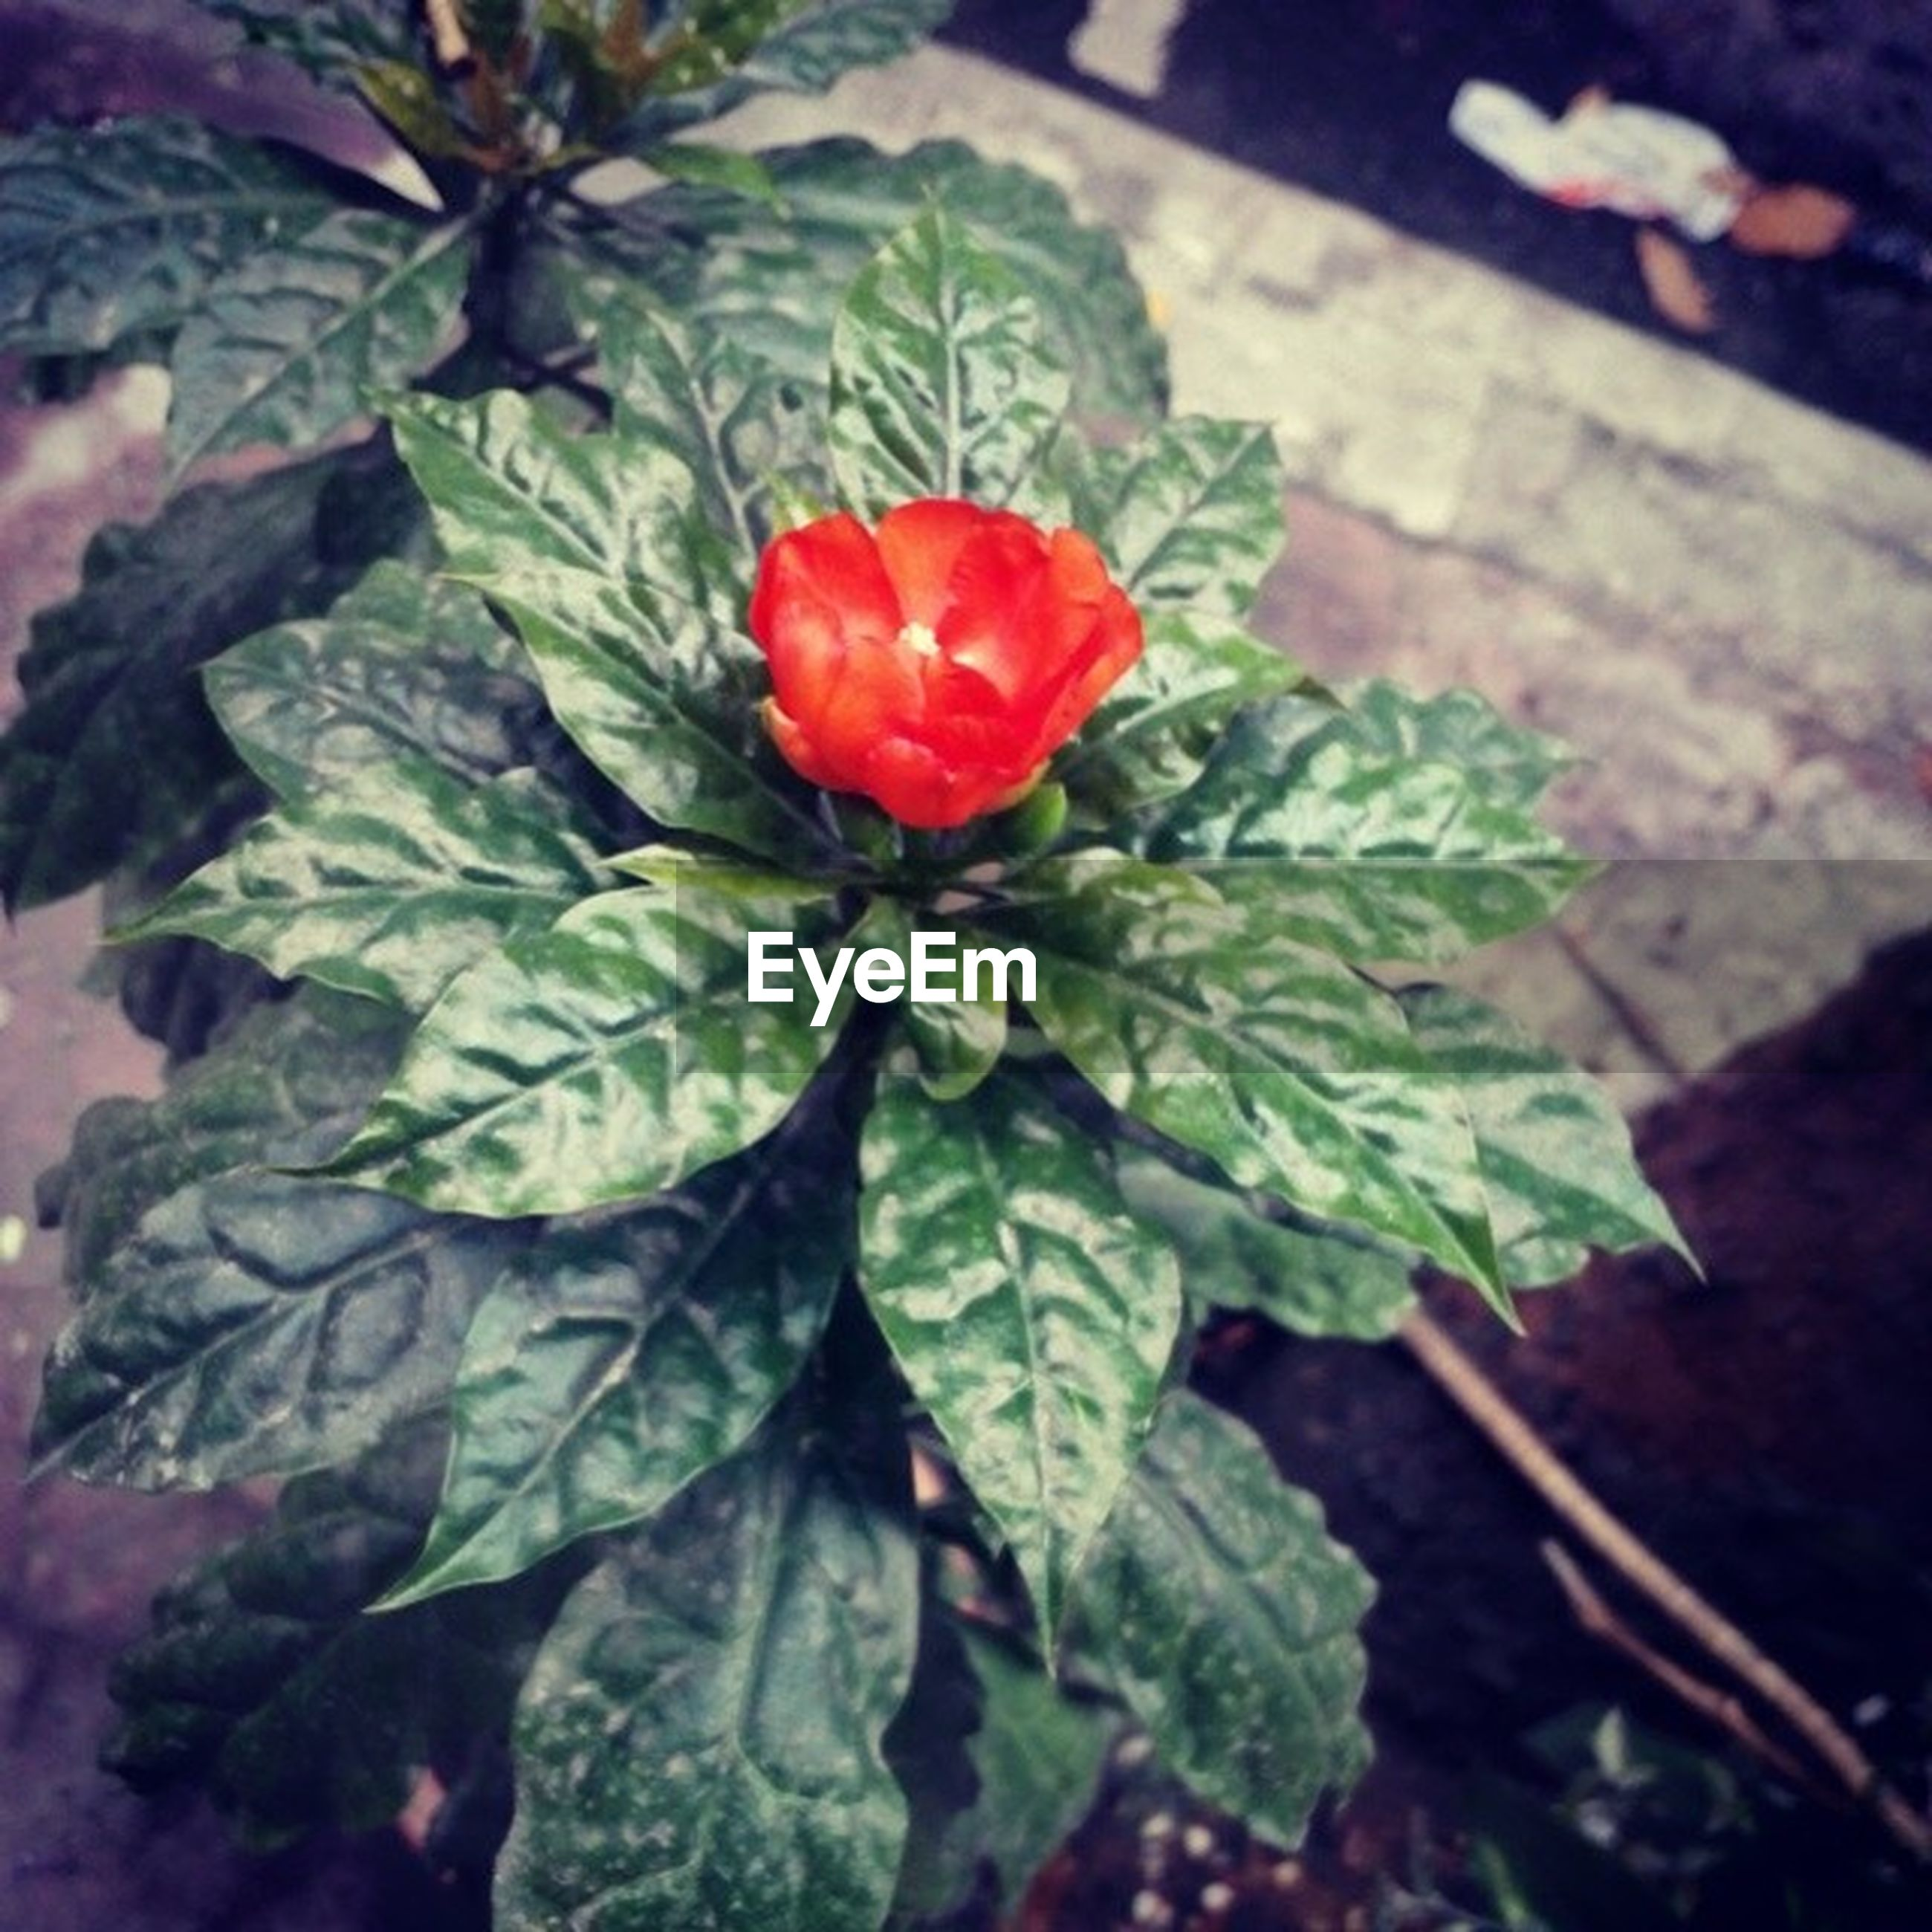 leaf, flower, growth, freshness, fragility, plant, petal, beauty in nature, red, flower head, nature, close-up, green color, blooming, focus on foreground, rose - flower, single flower, in bloom, botany, day